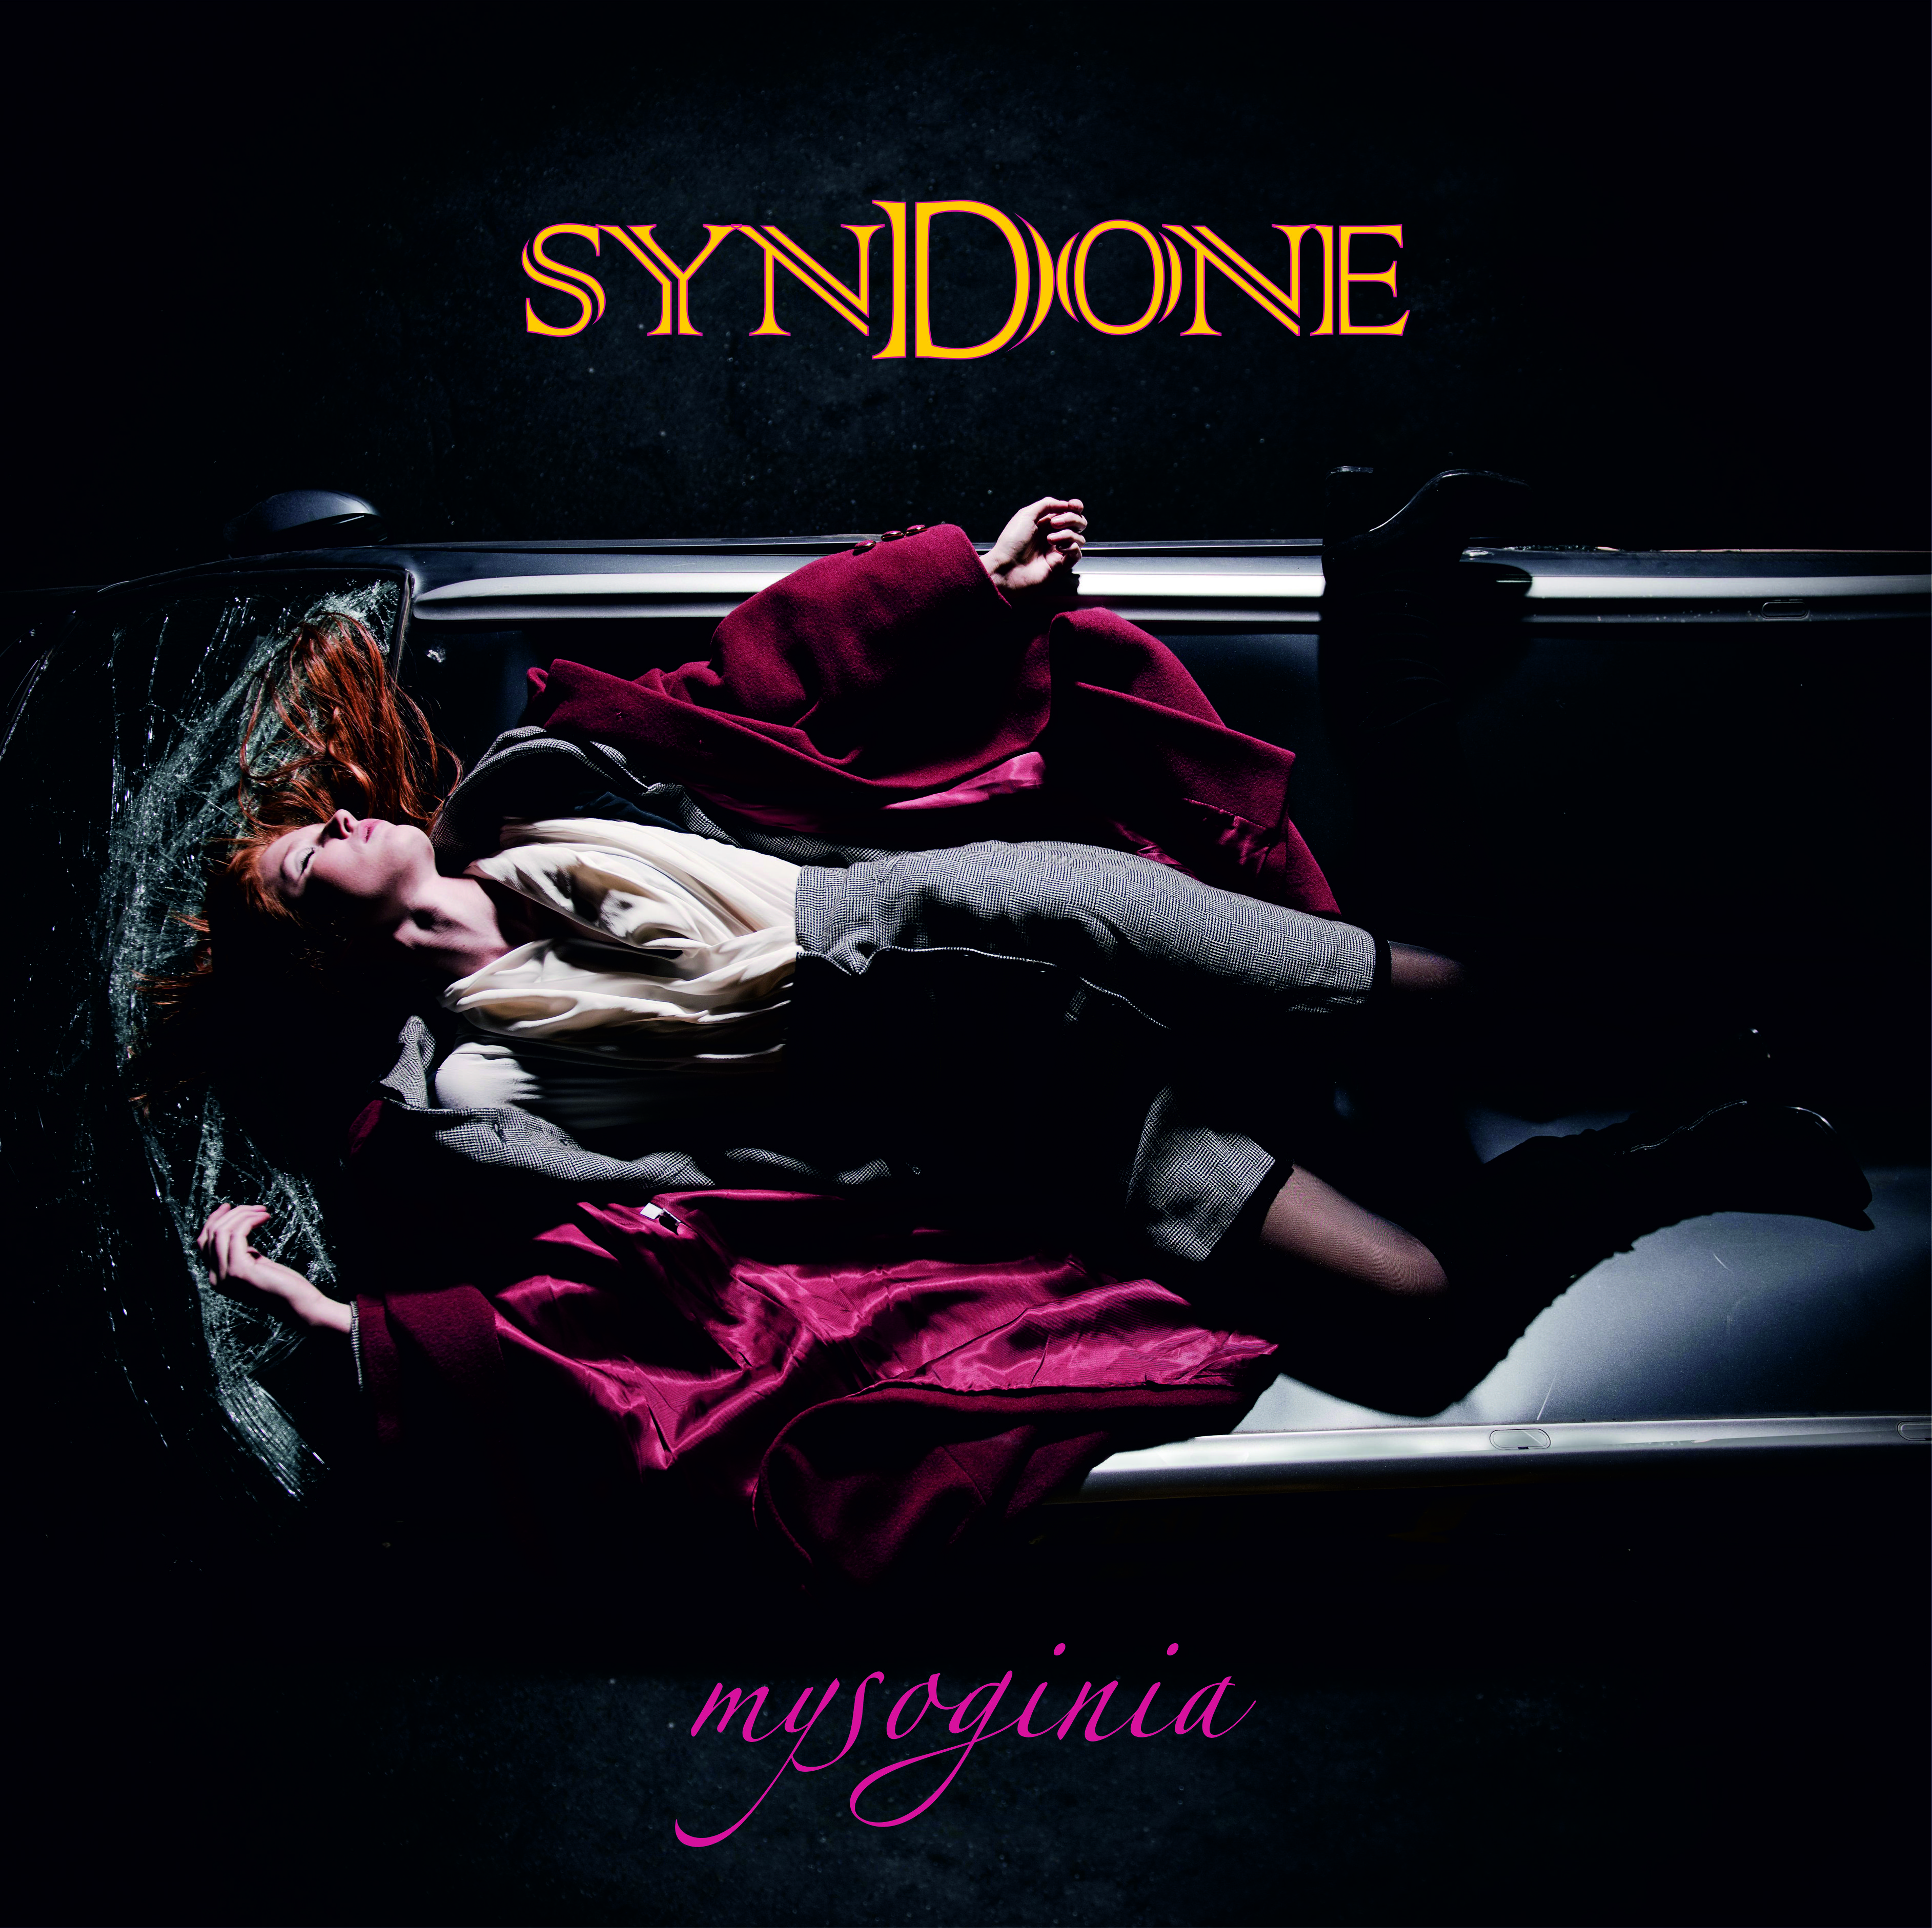 SYNDONE - Mysoginia  LP Papersleeve